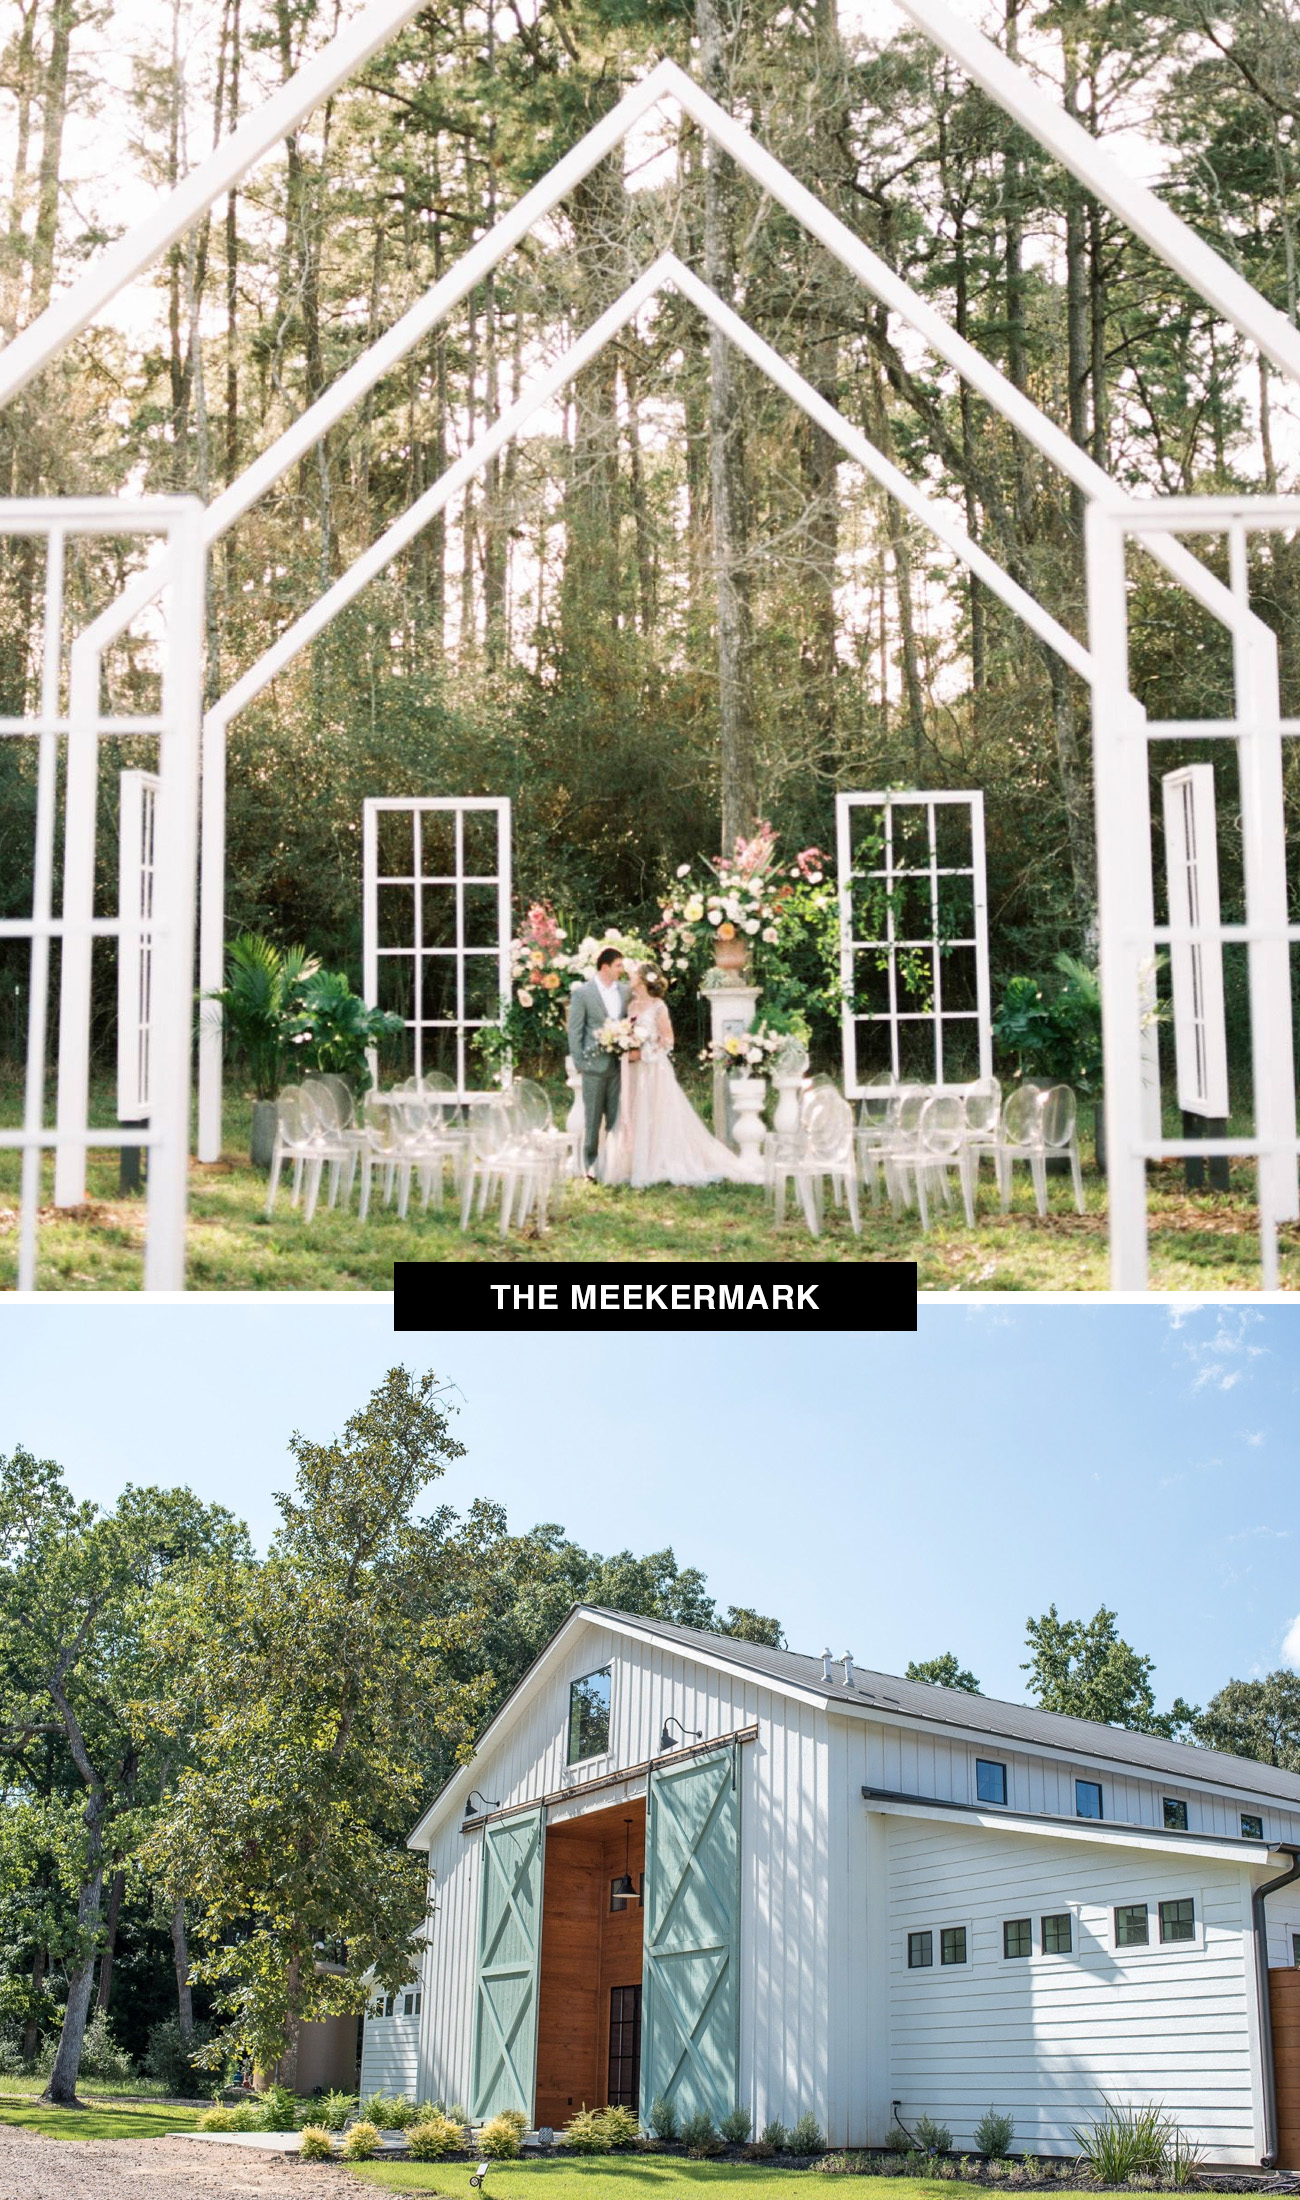 Meekermark wedding venue in Texas is an historic barn that would be a great place to get married